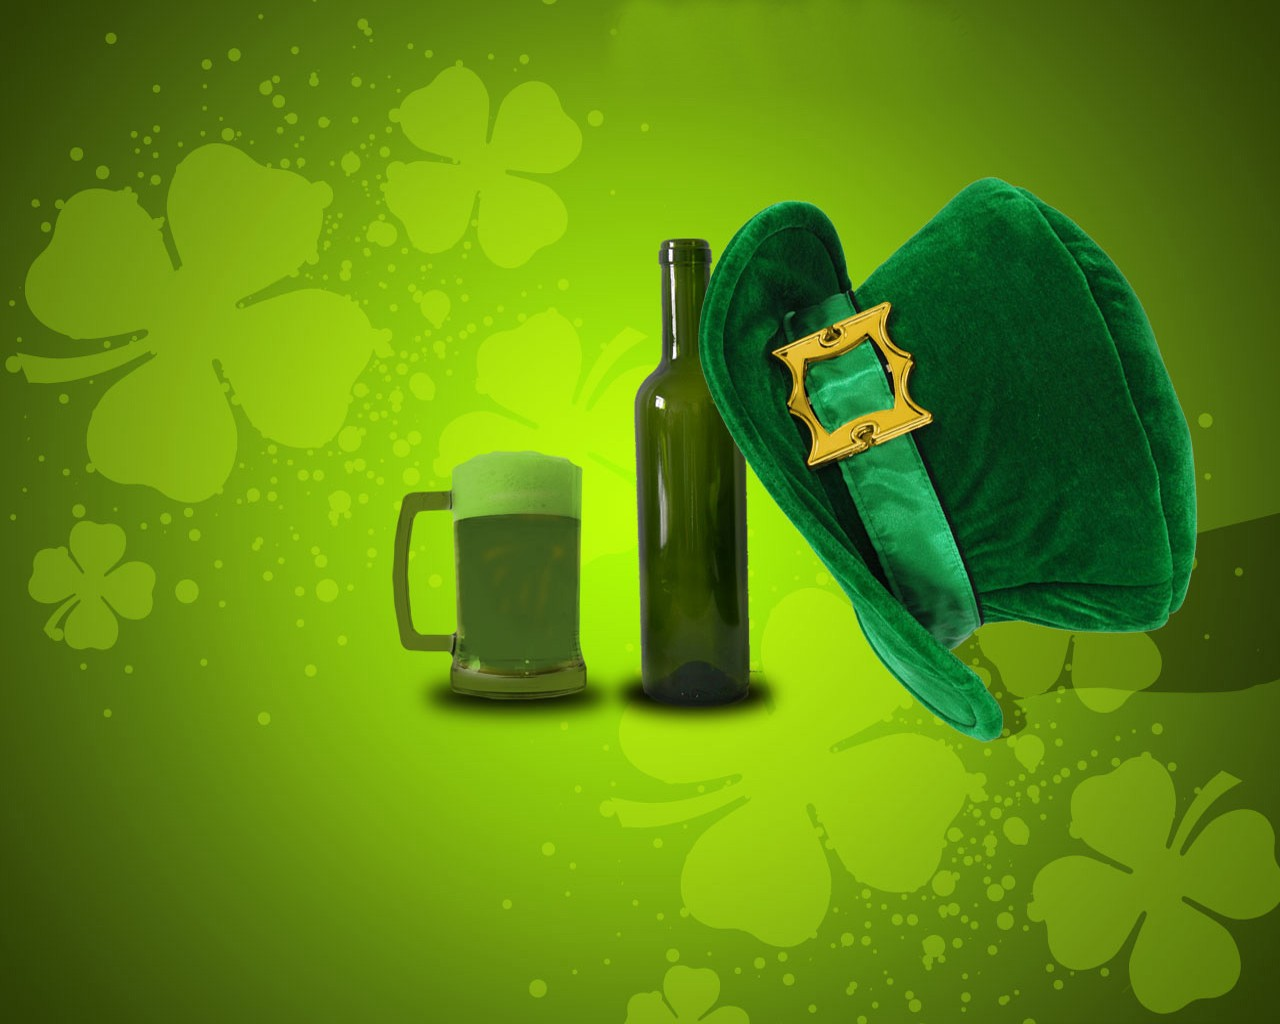 St Patricks Day Wallpaper   Miscellaneous Photos and Wallpapers 1280x1024